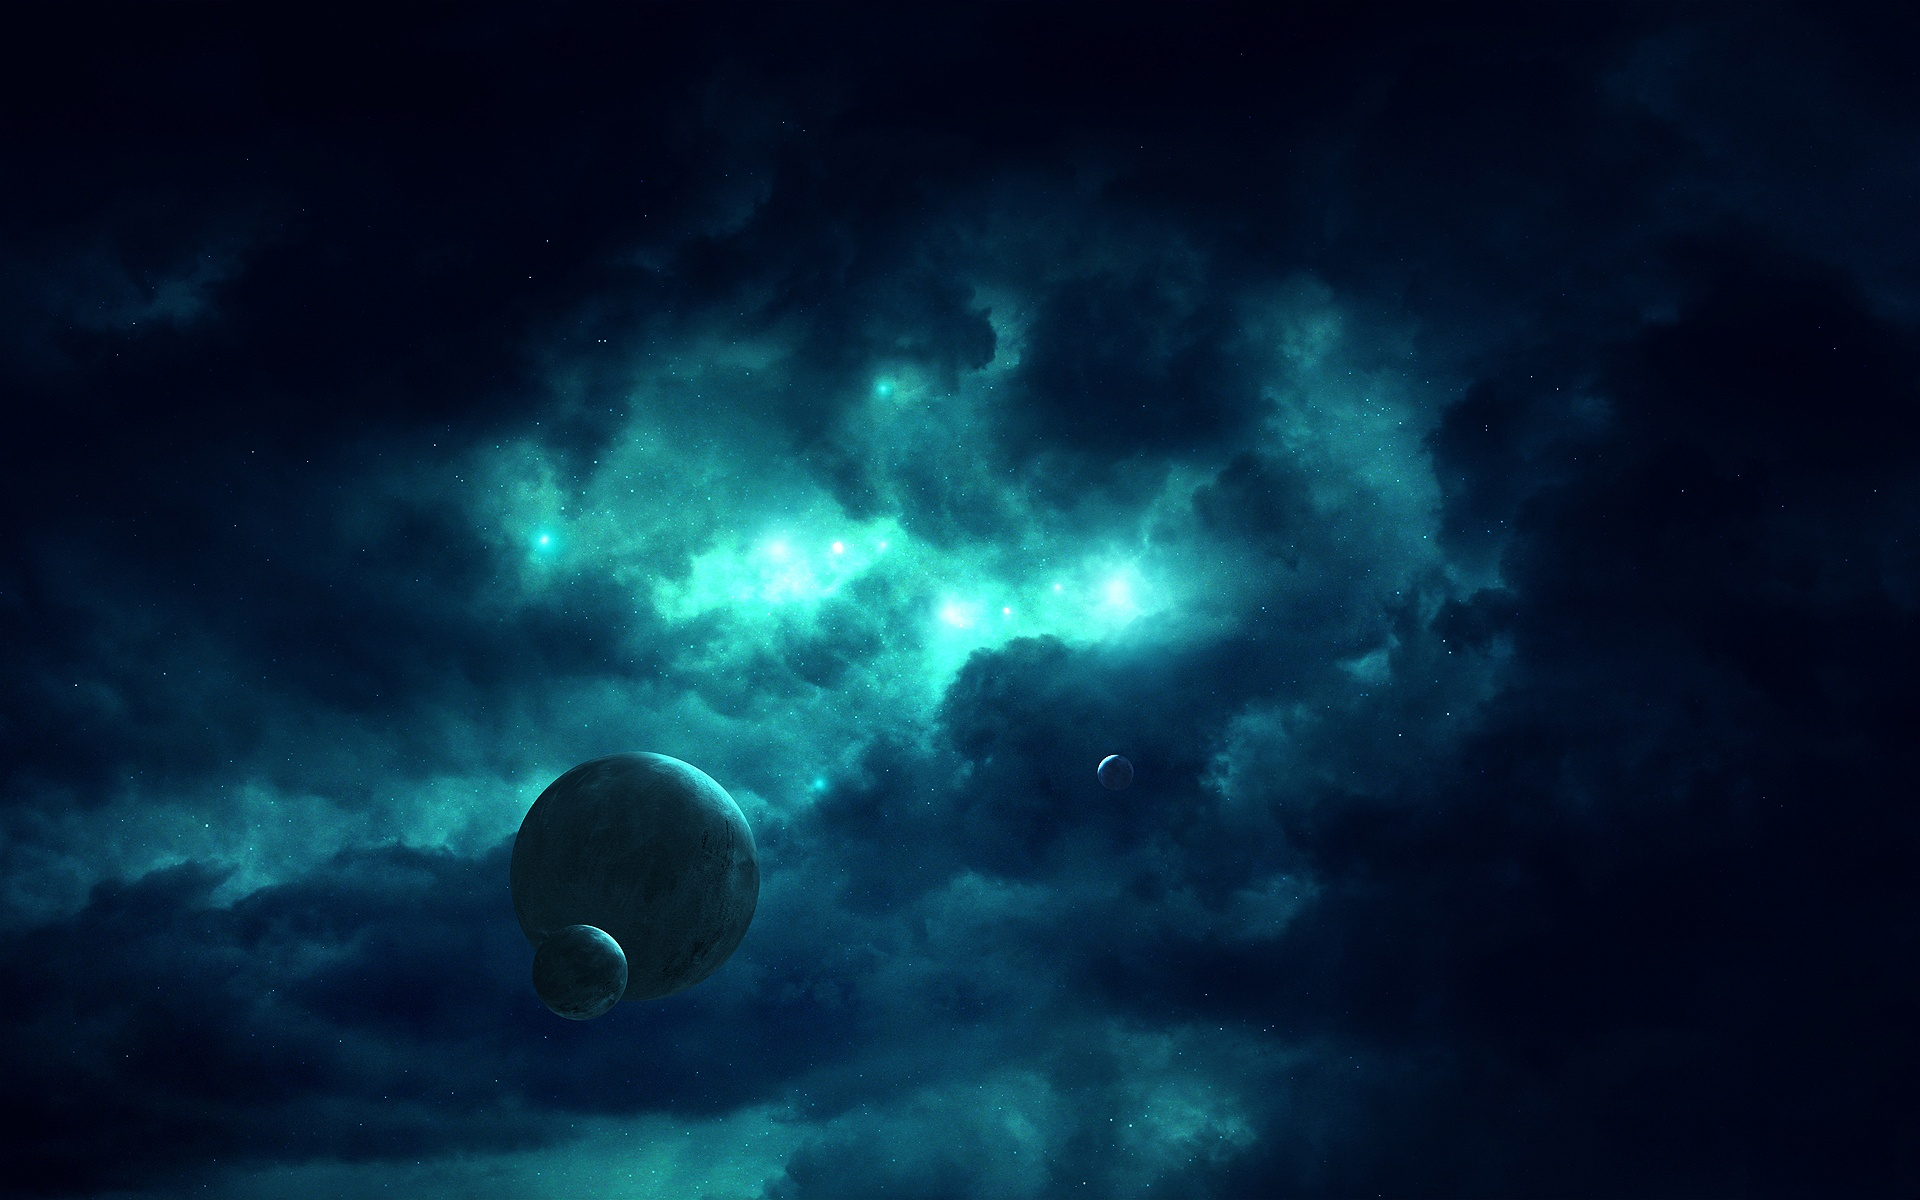 Darkness Space In Stars Wallpapers - 1920x1200 - 525885